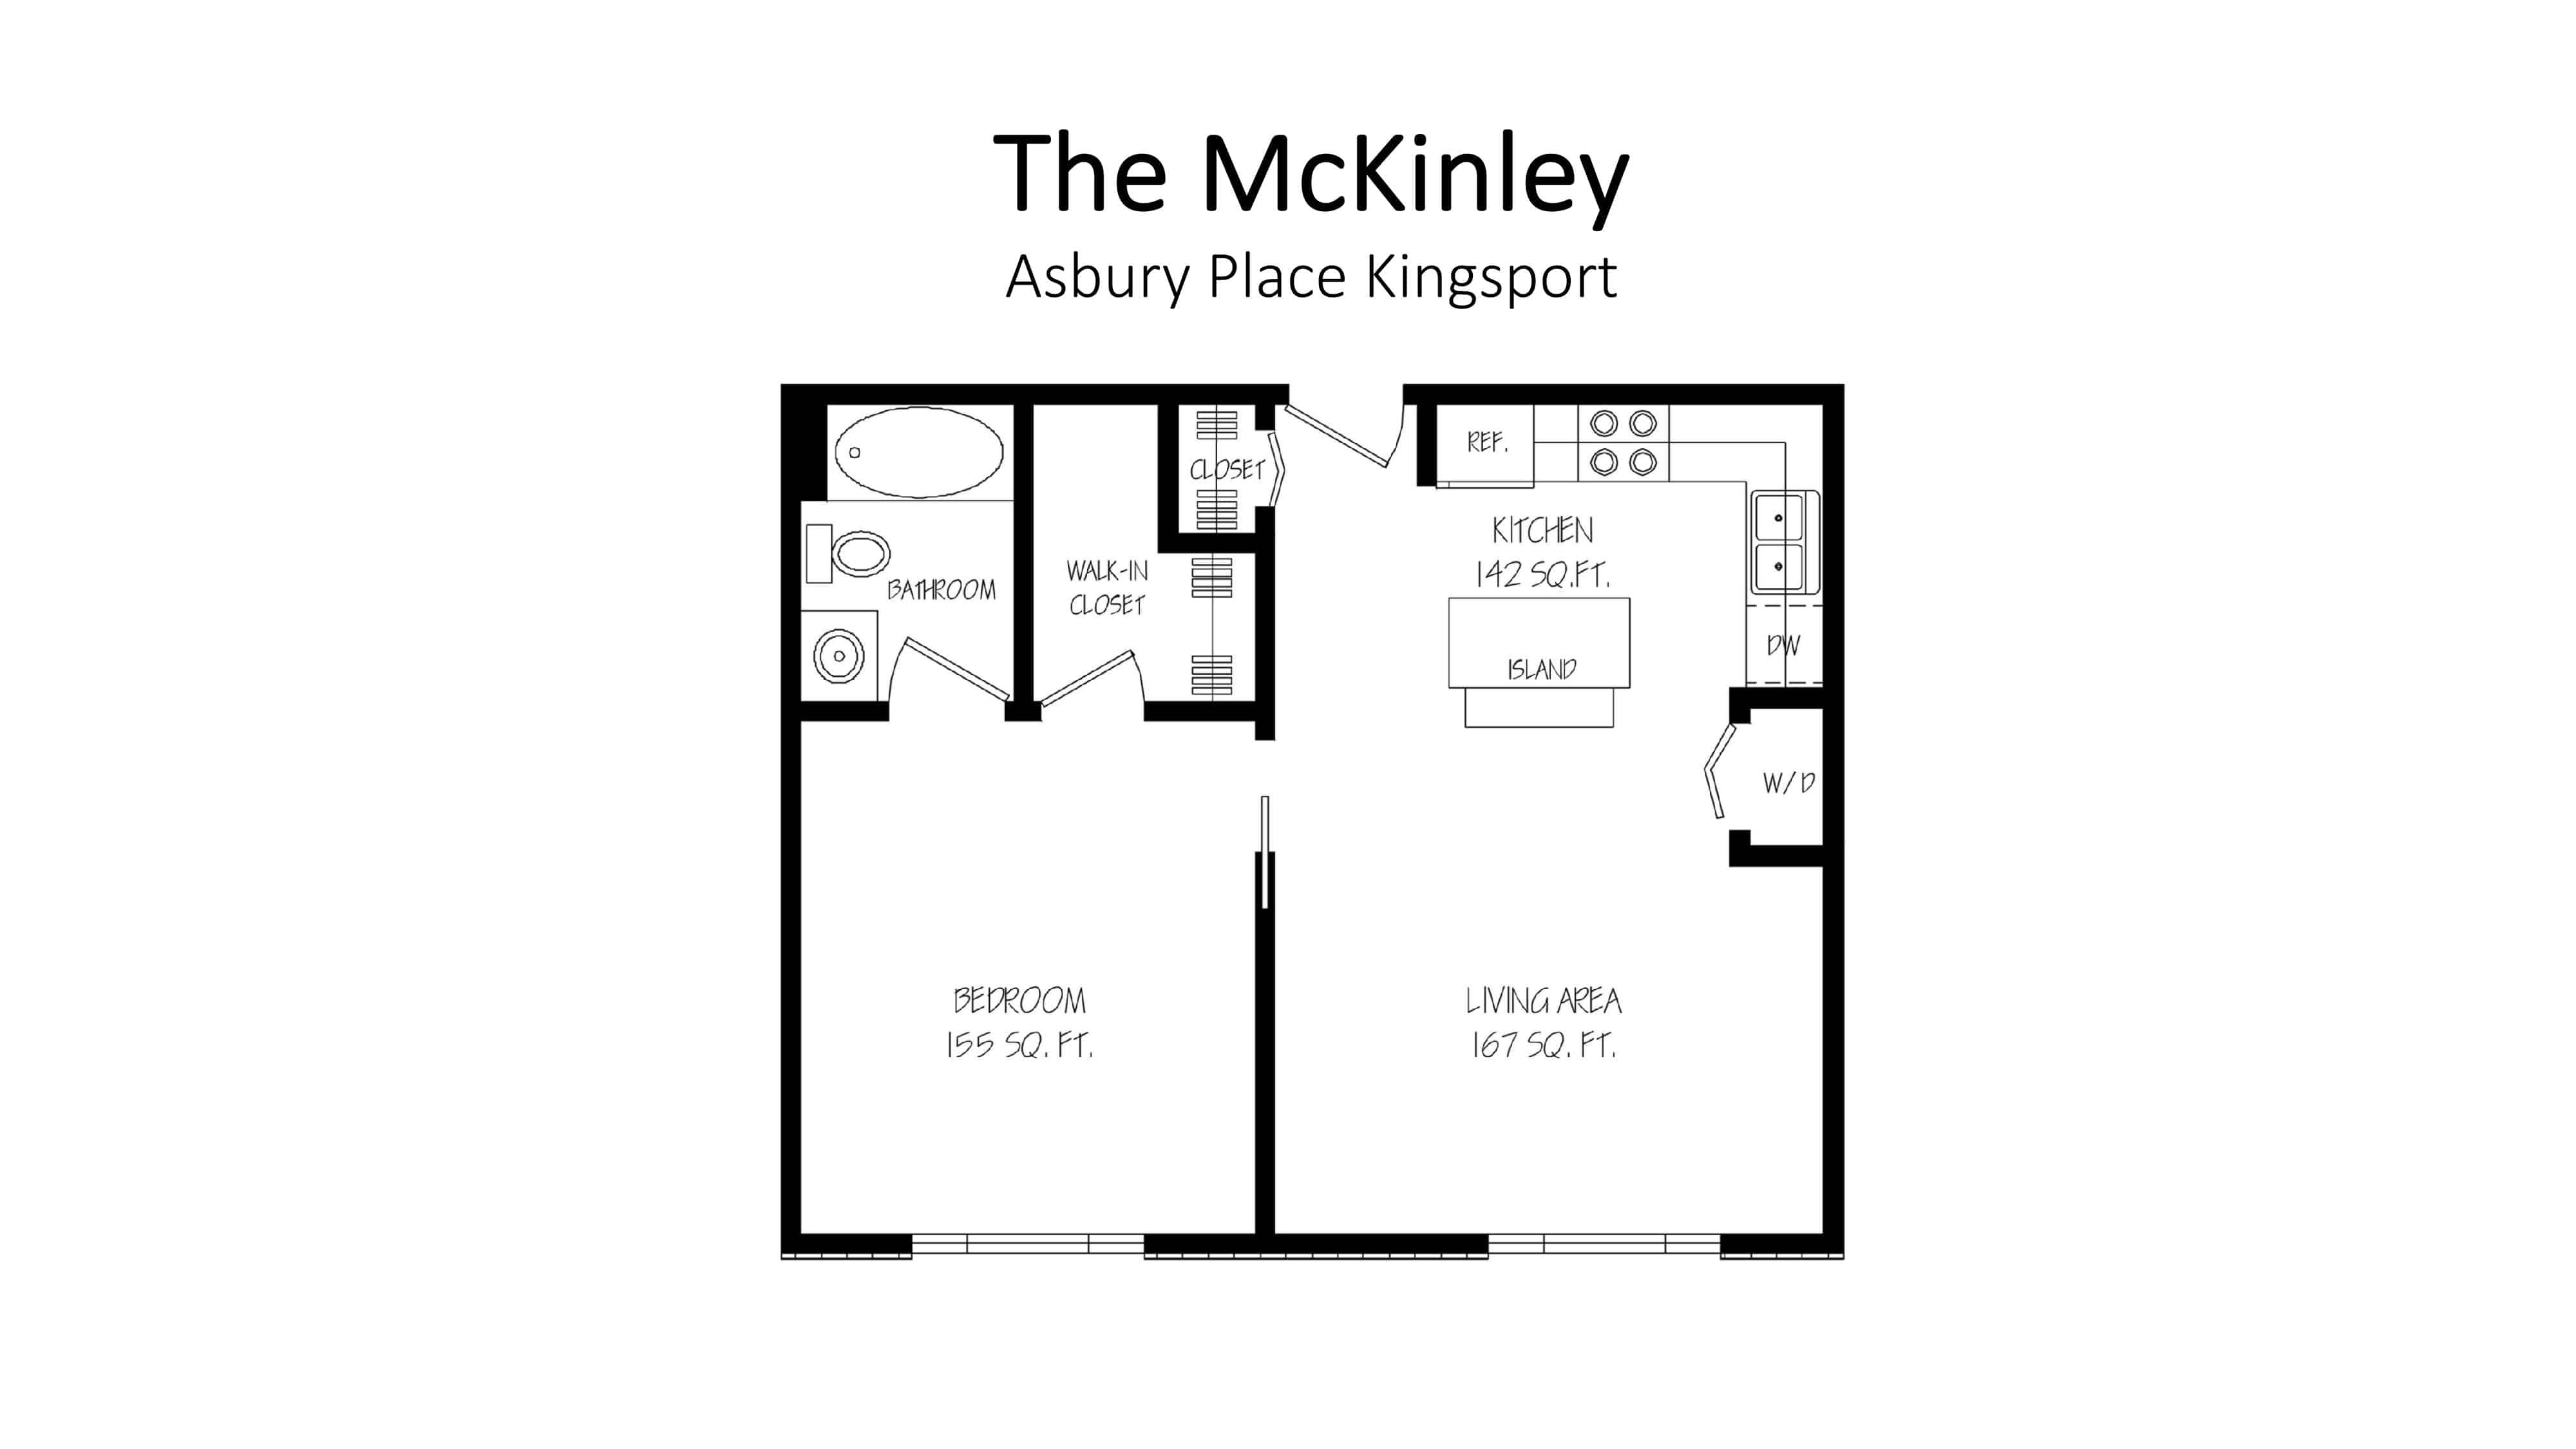 Asbury Place Kingsport The McKinley Floorplan